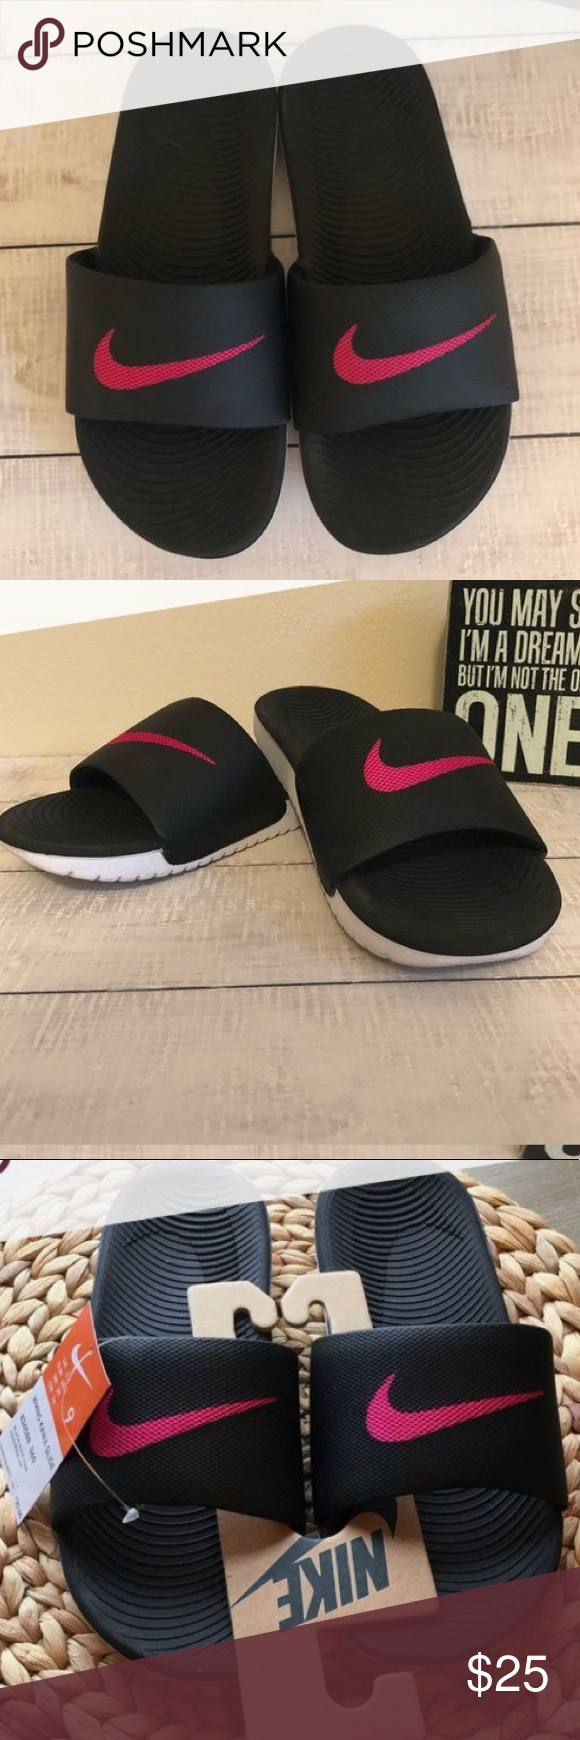 competitive price 9c483 577a0 Pink Nike Sandals good condition size 9 Nike Shoes Slippers ...